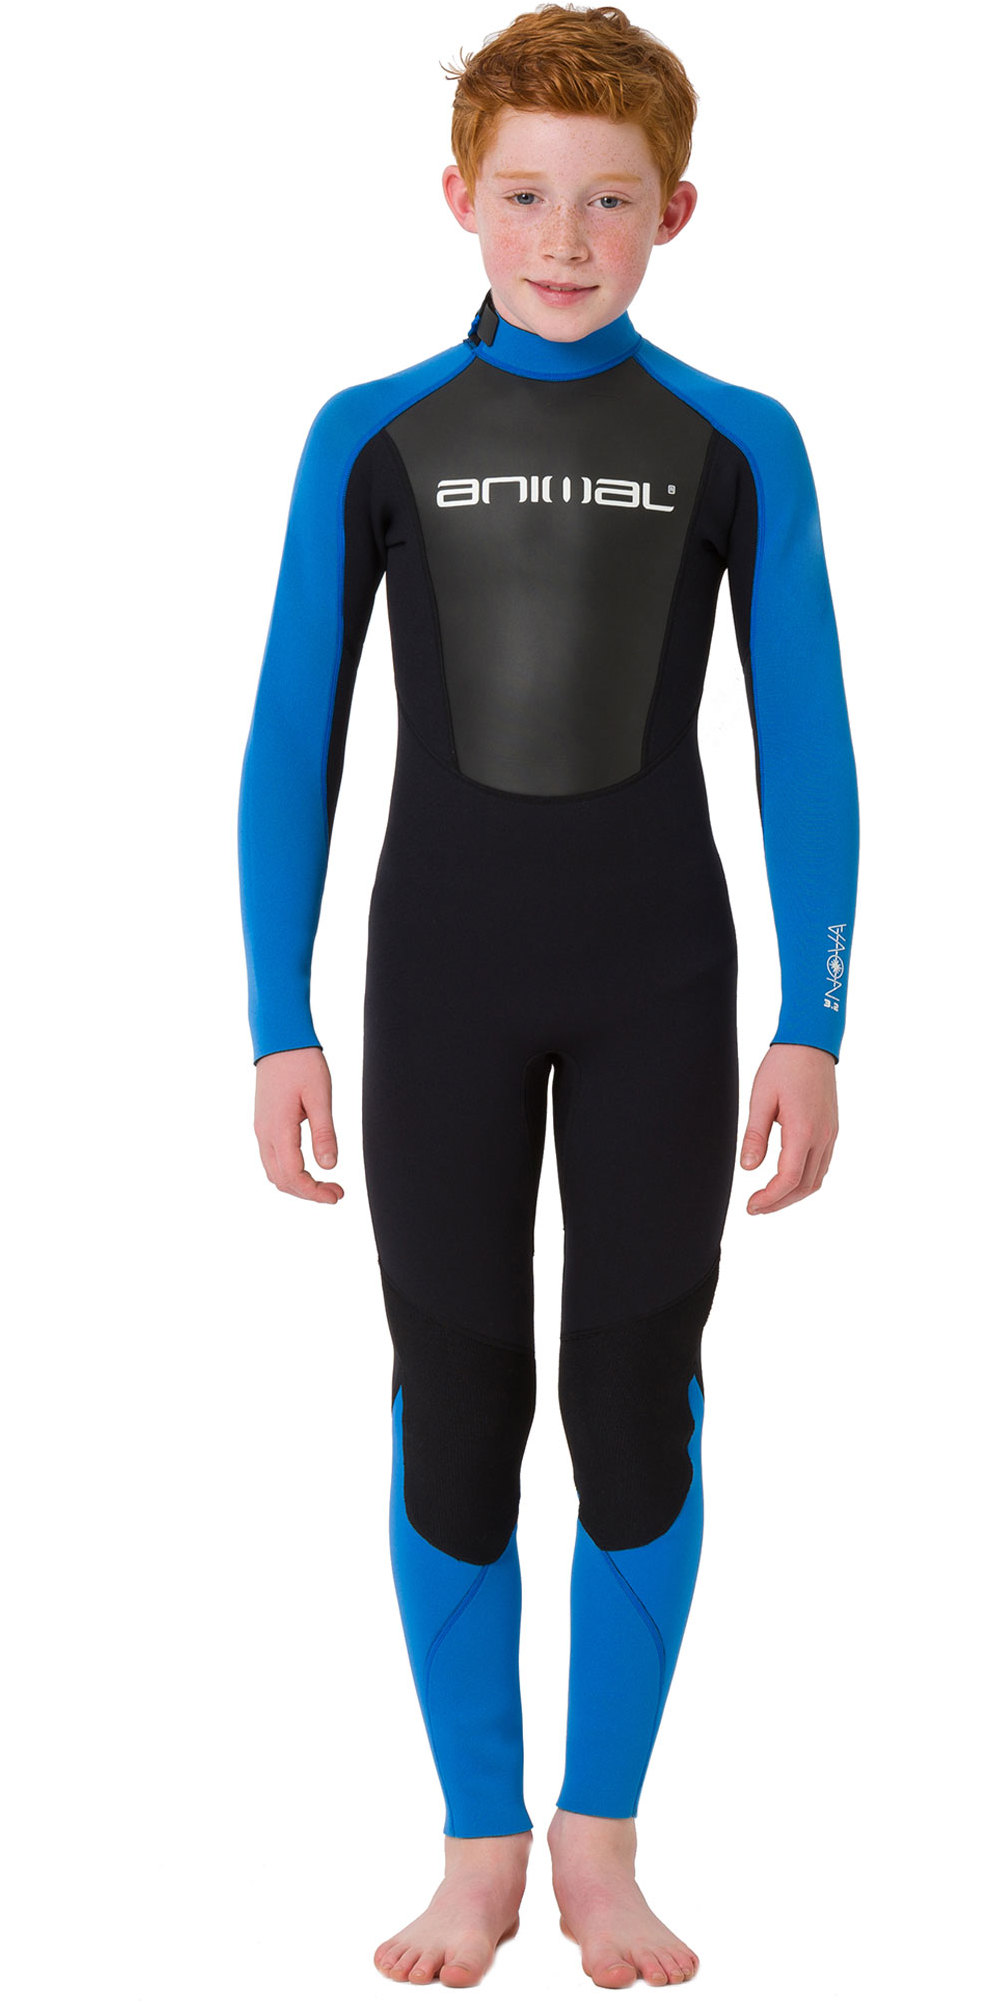 2019 Animal Junior Boys Nova 3/2mm Flatlock Back Zip Wetsuit Black AW9SQ602